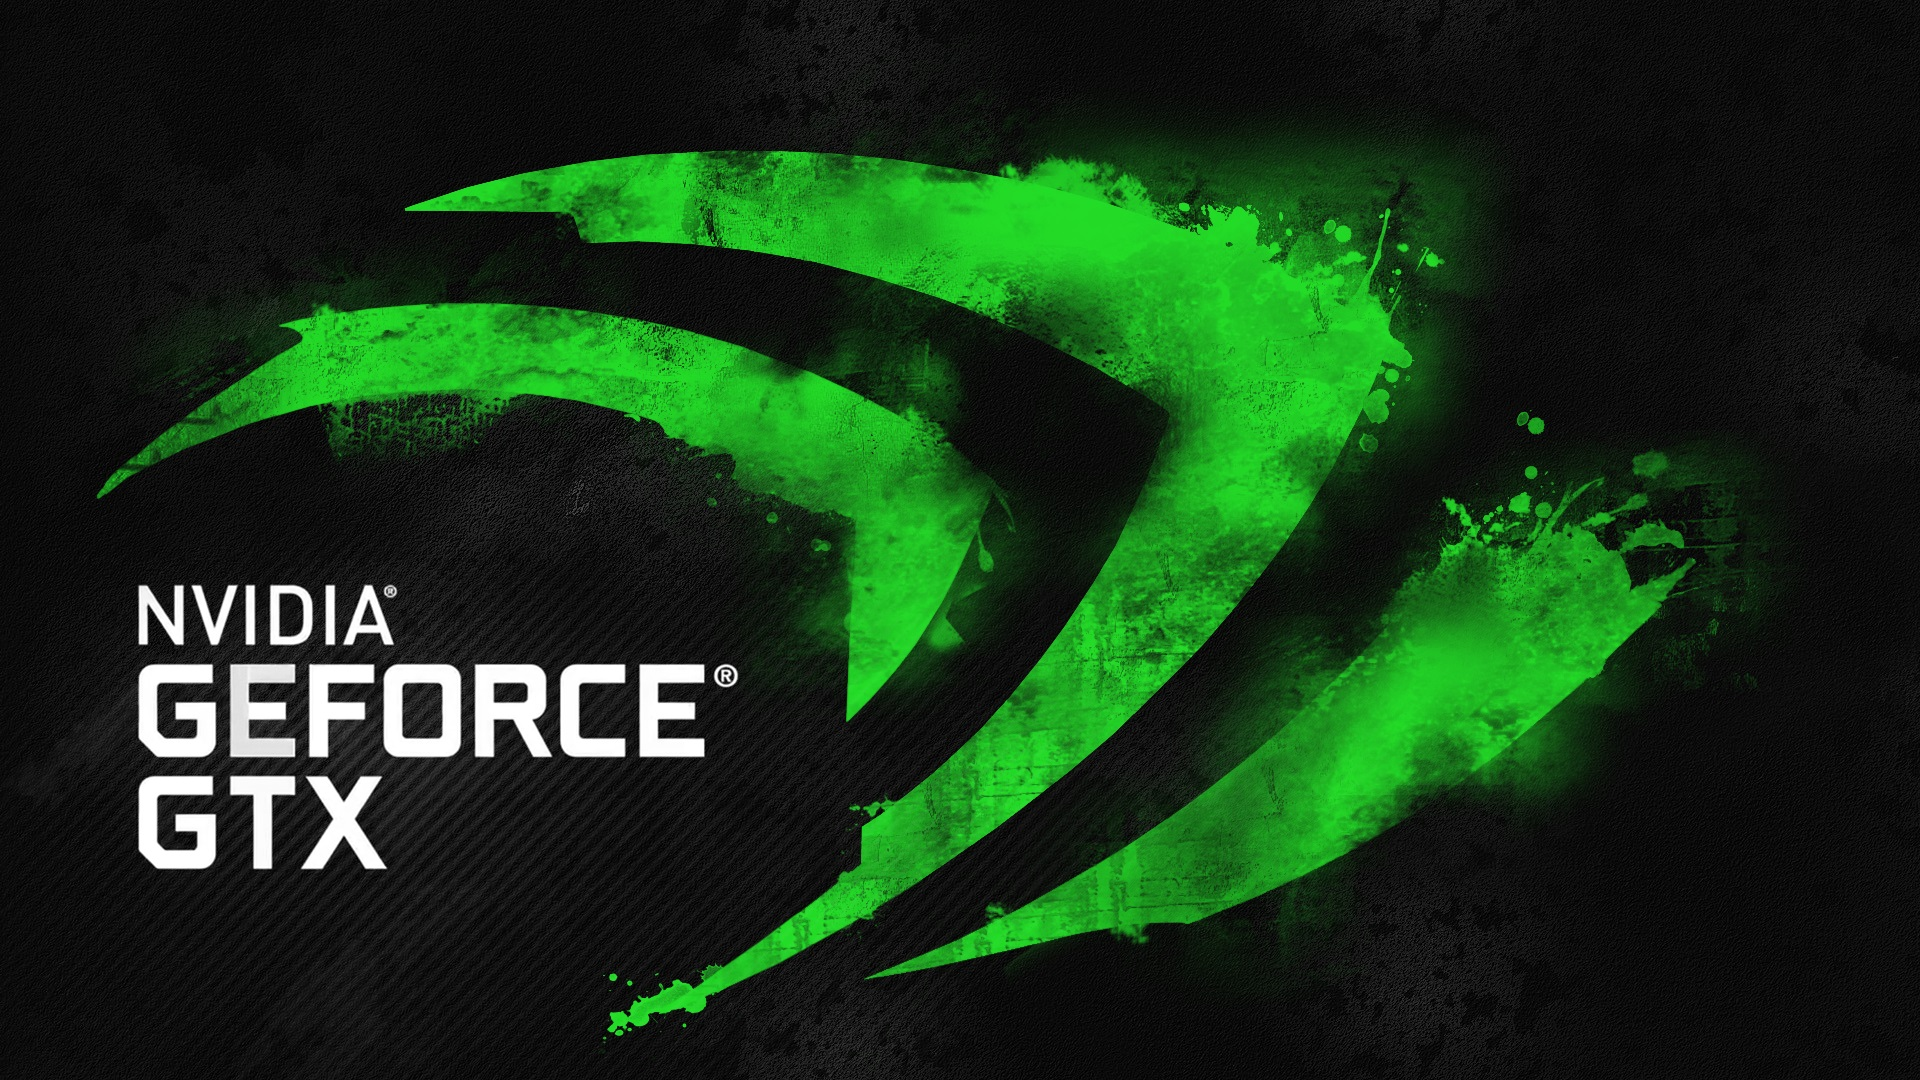 Nvidia GeForce GTX 900 Series Price Cuts